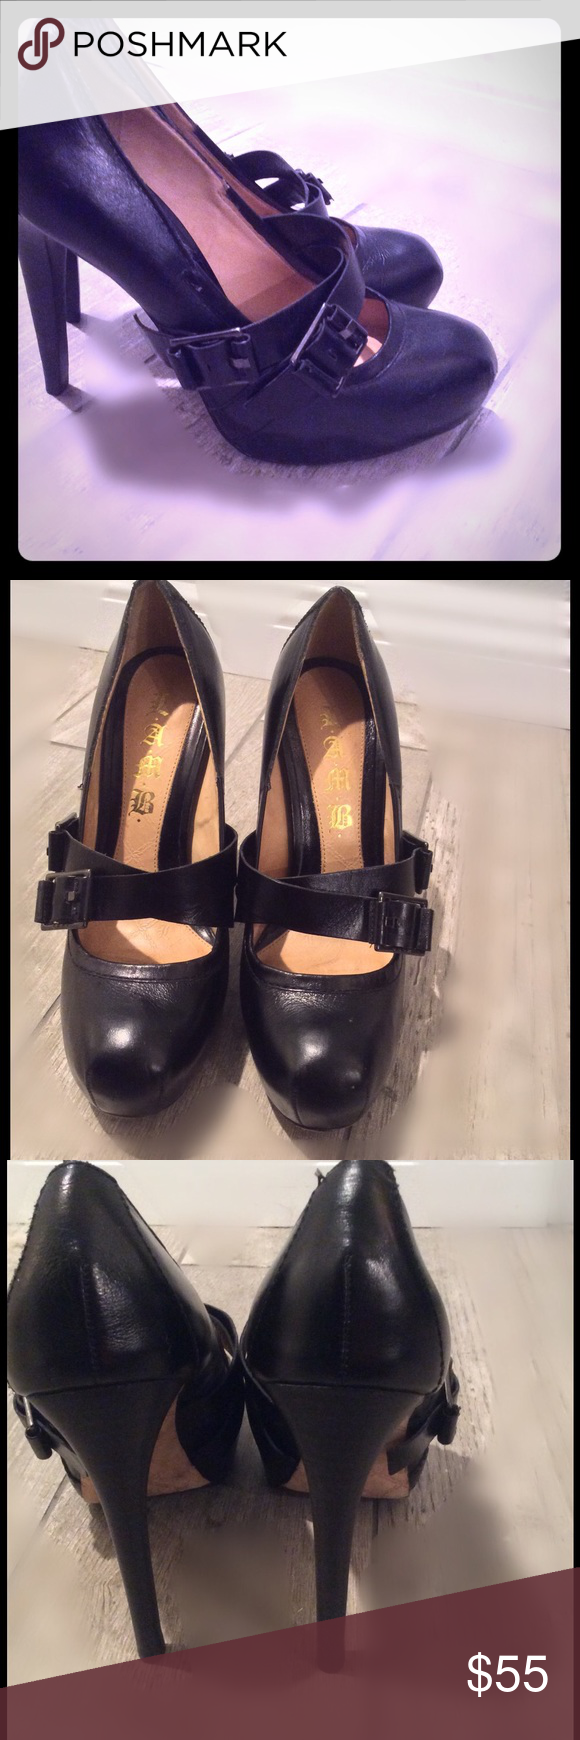 L.A.M.B. Mary Jane Black Heels